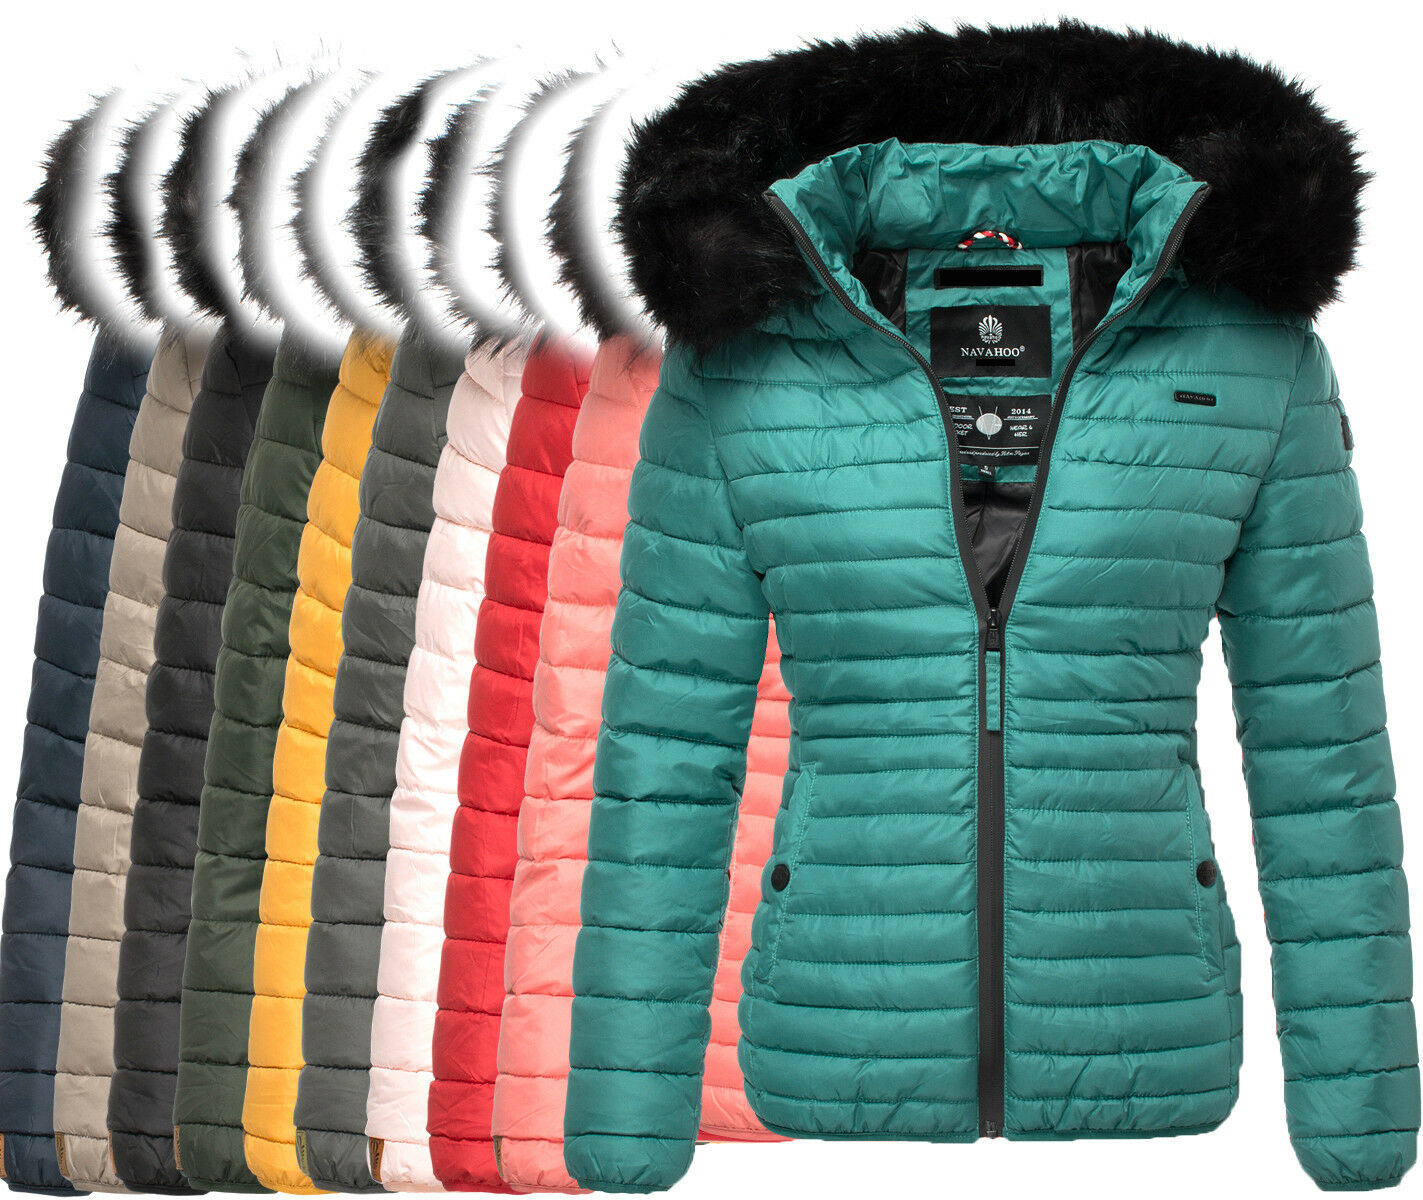 Details about Navahoo Autumn Winter Jacket Ladies Quilted Jacket Faux Fur Collar Hooded Jacket New show original title